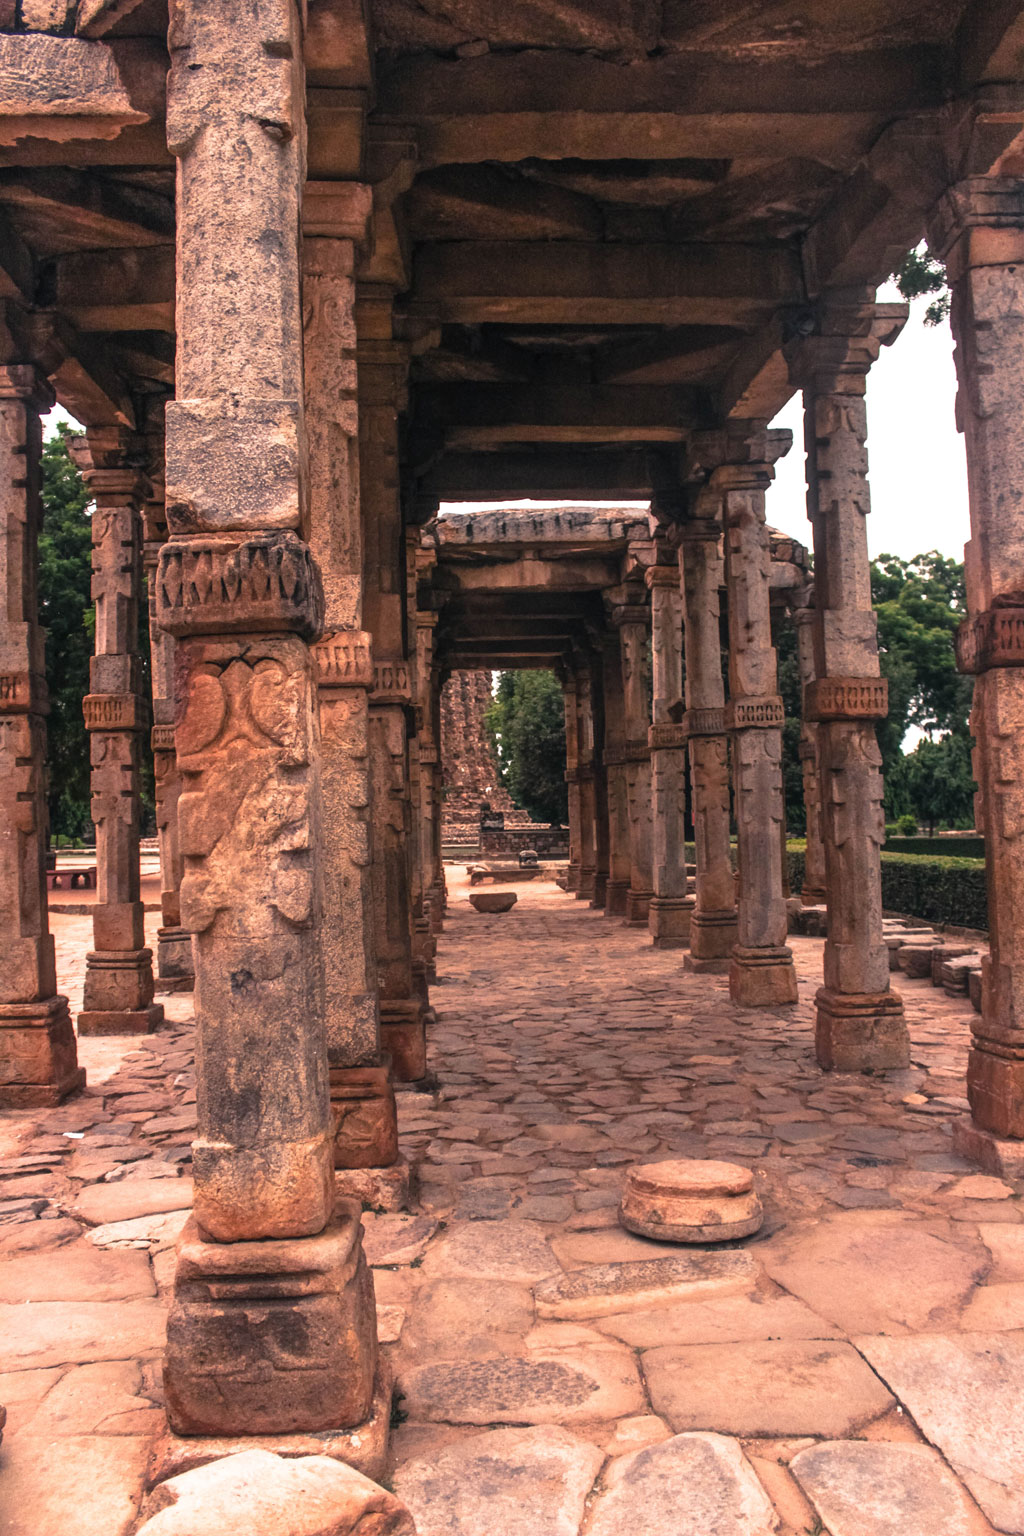 The pillars of the structures are elegantly carved on with beautiful designs